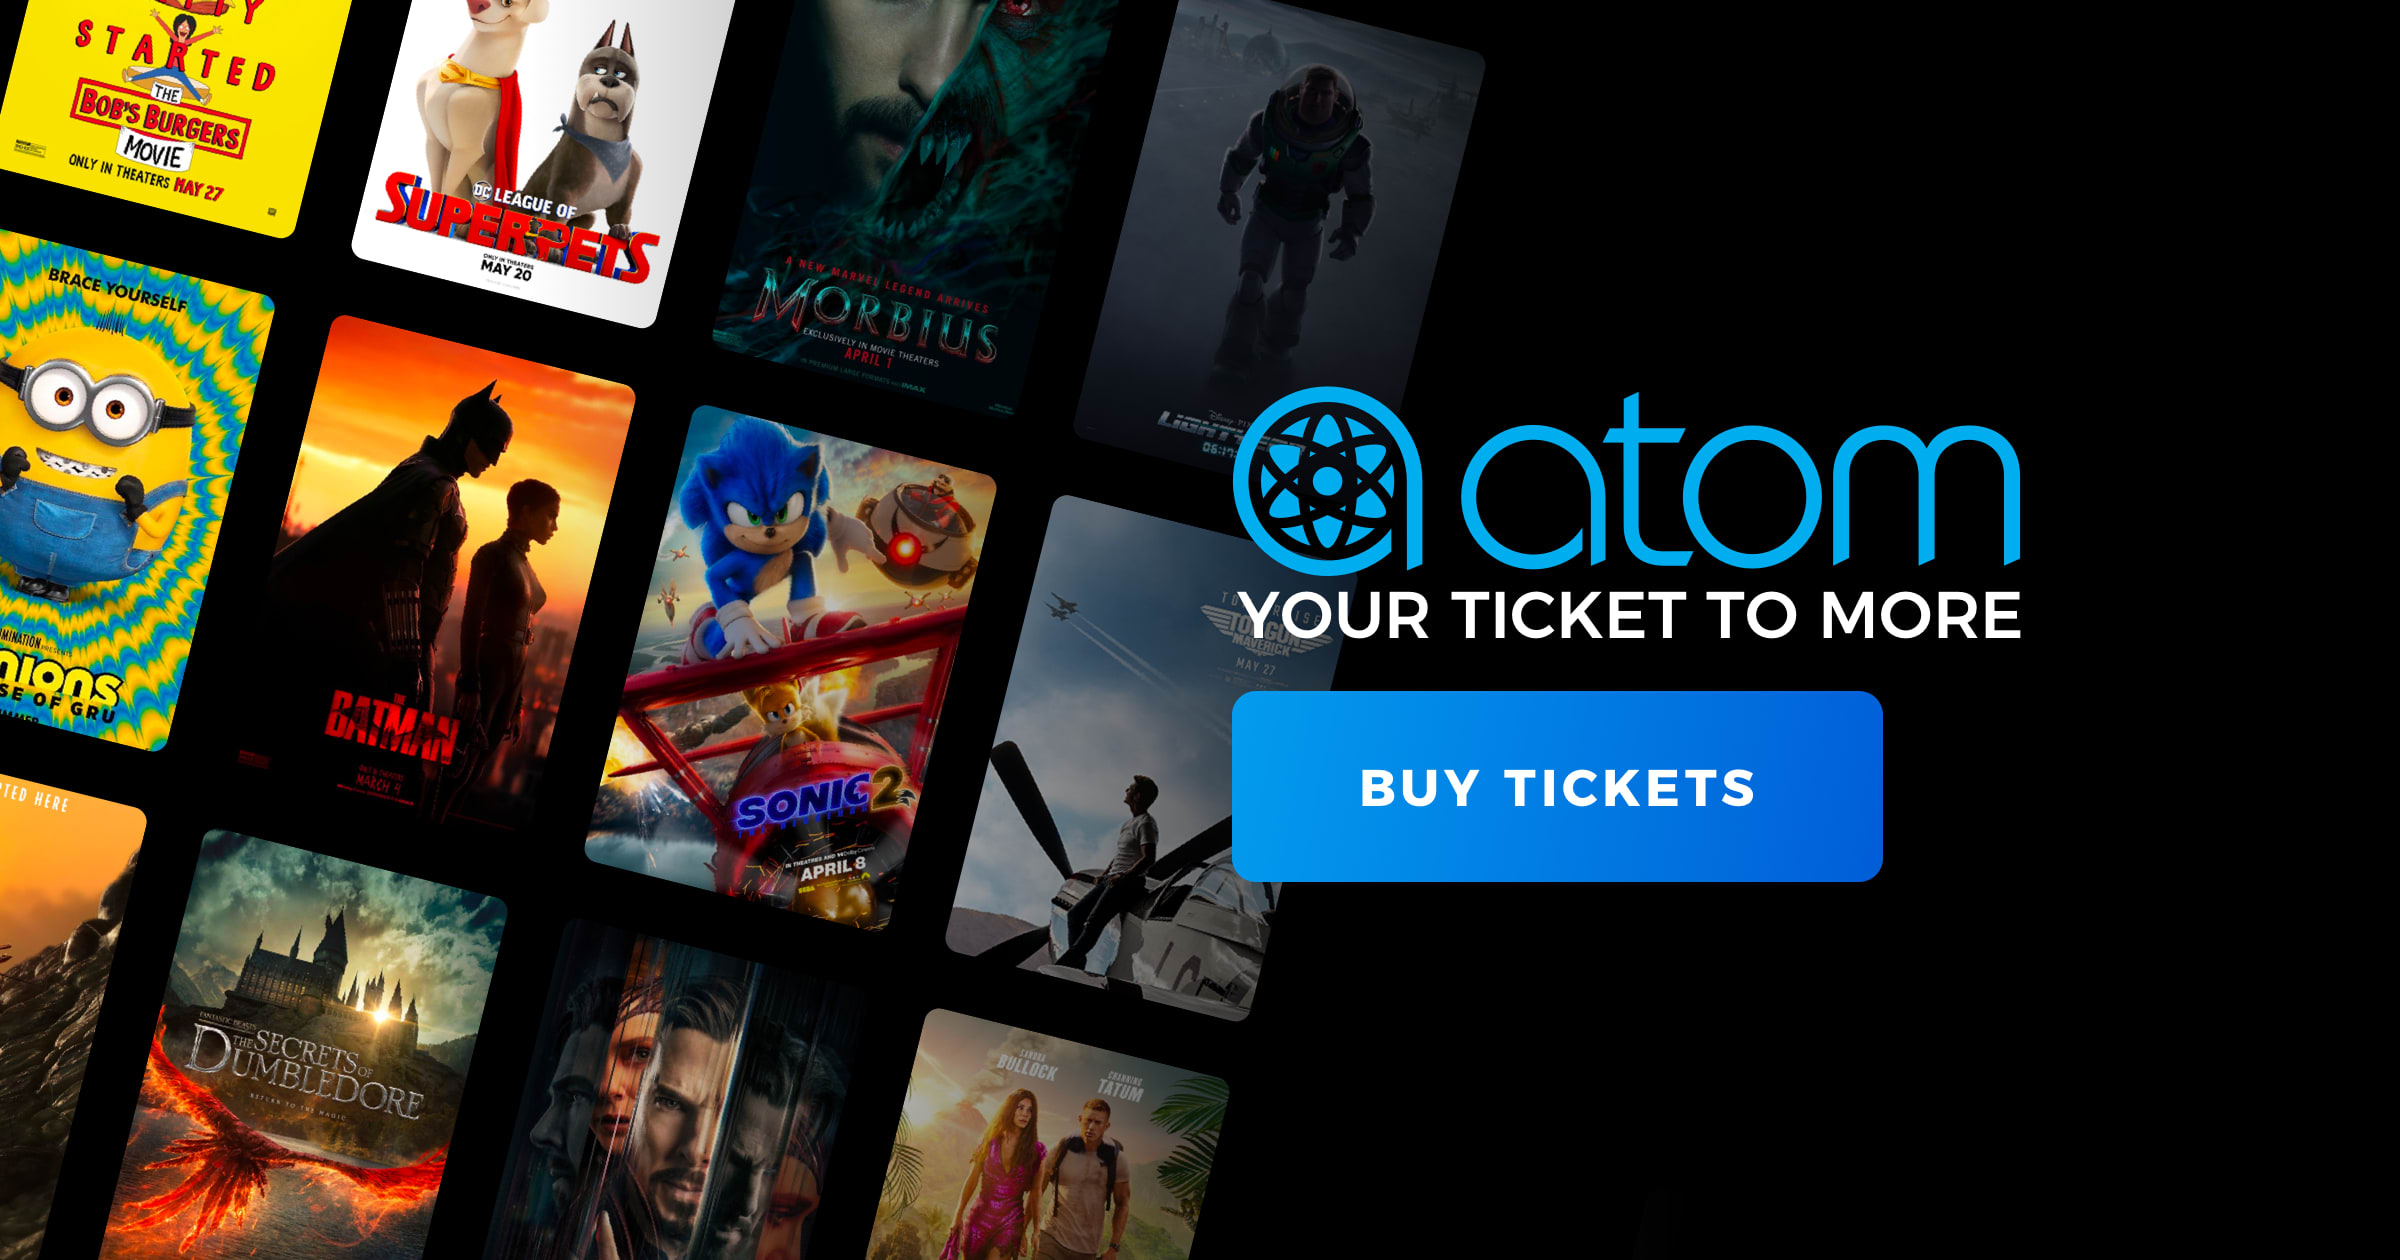 Lucky Atom Users Can Get $7 Off a Ticket to Seven Select Movies (For a Limited Time, While Supplies Last)! | Atom, the Future of Movies